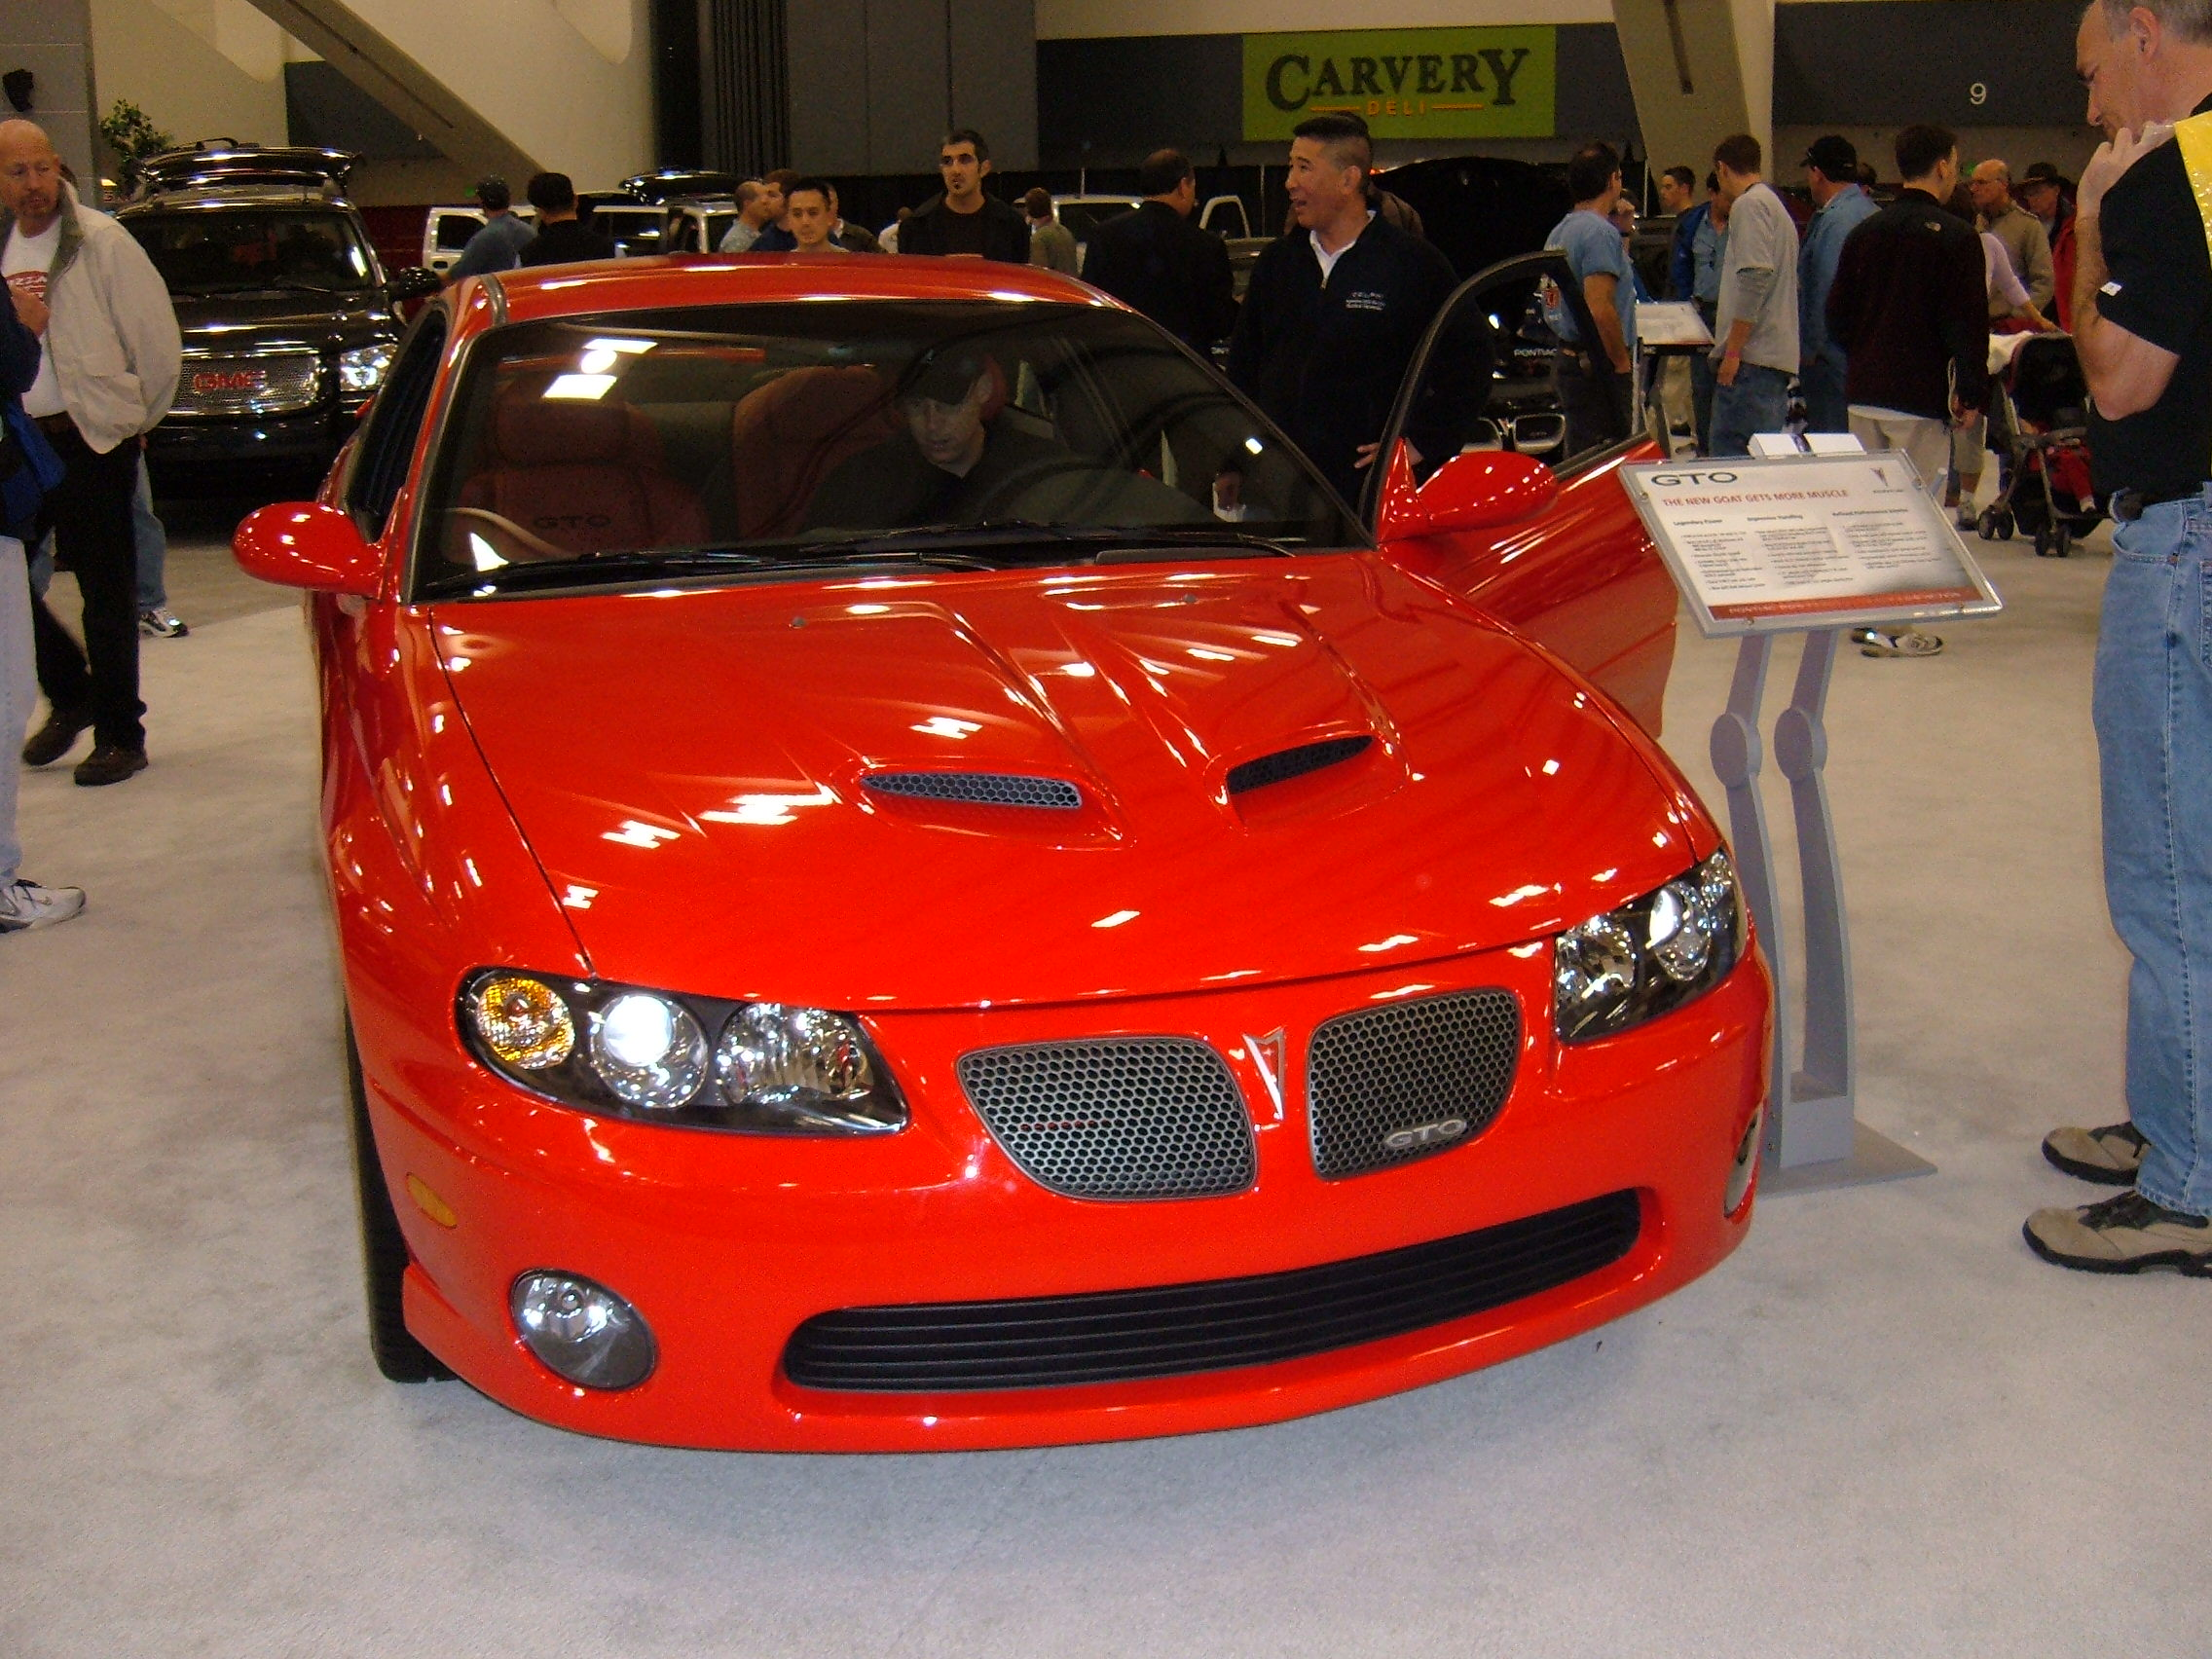 File:2005 red Pontiac GTO front.JPG - Wikimedia Commons